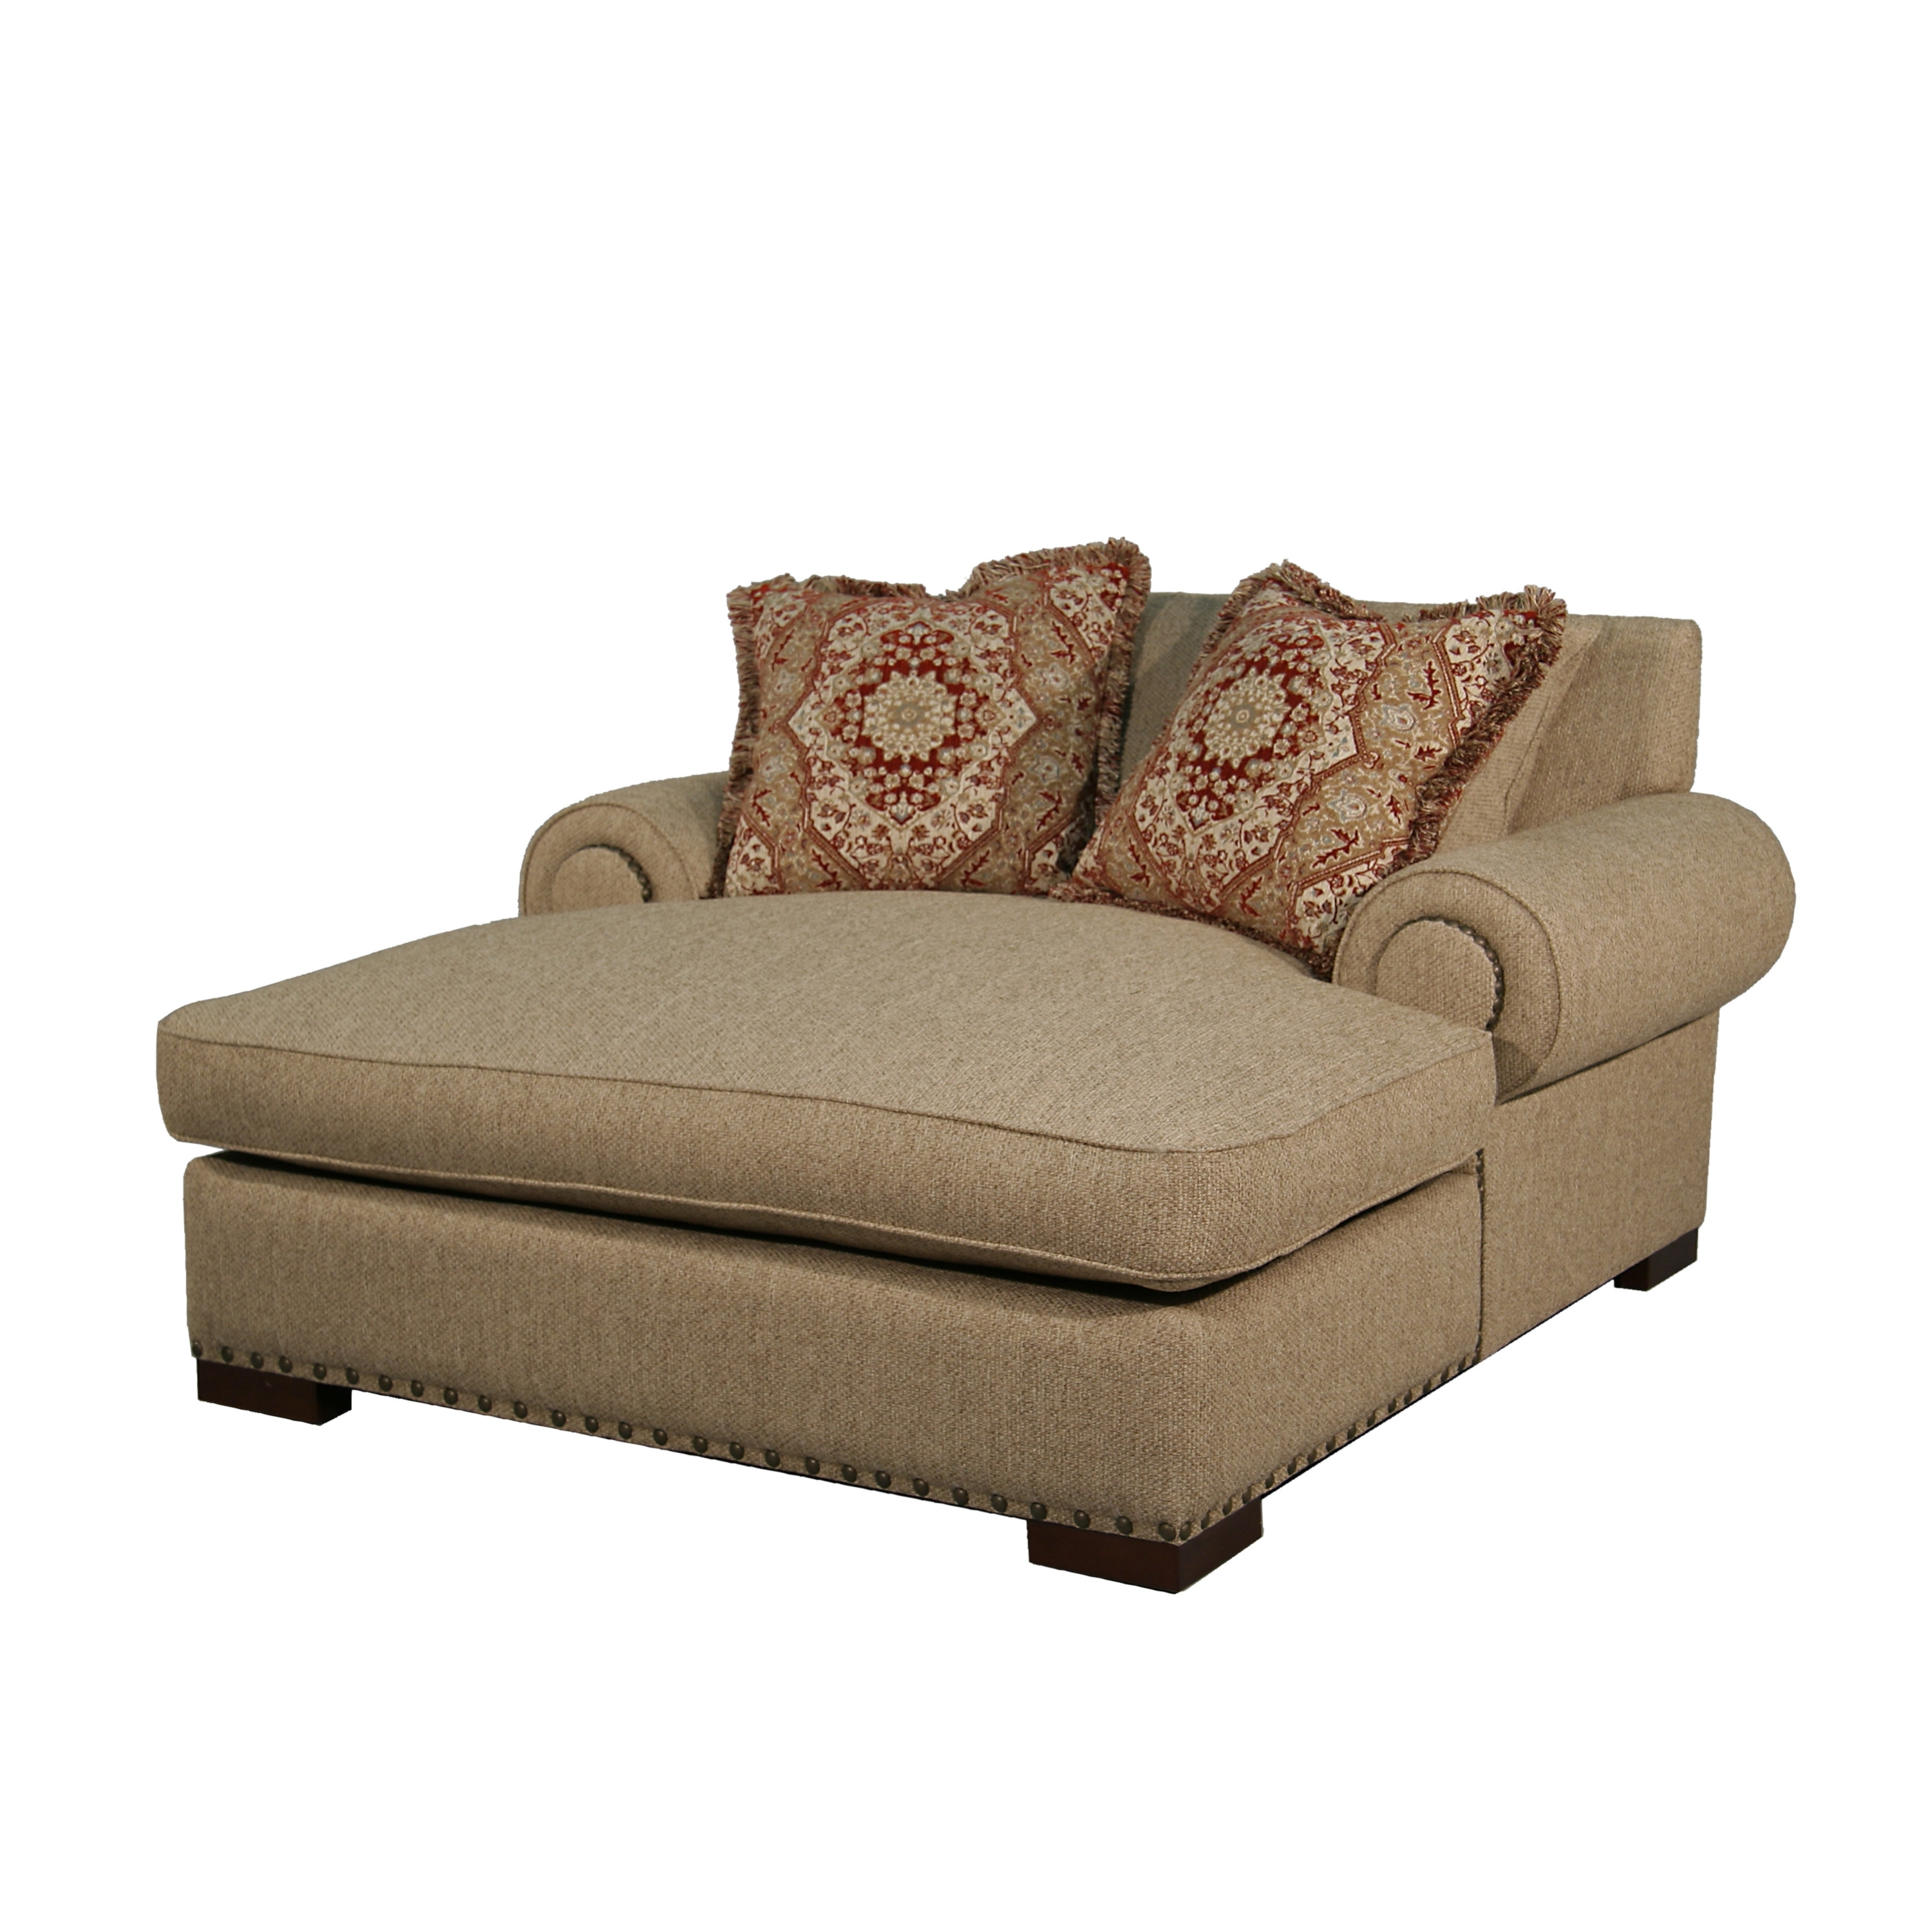 Chaise Lounge Chairs Two Arms • Lounge Chairs Ideas Pertaining To Popular Chaise Lounge Chairs With Two Arms (View 5 of 15)